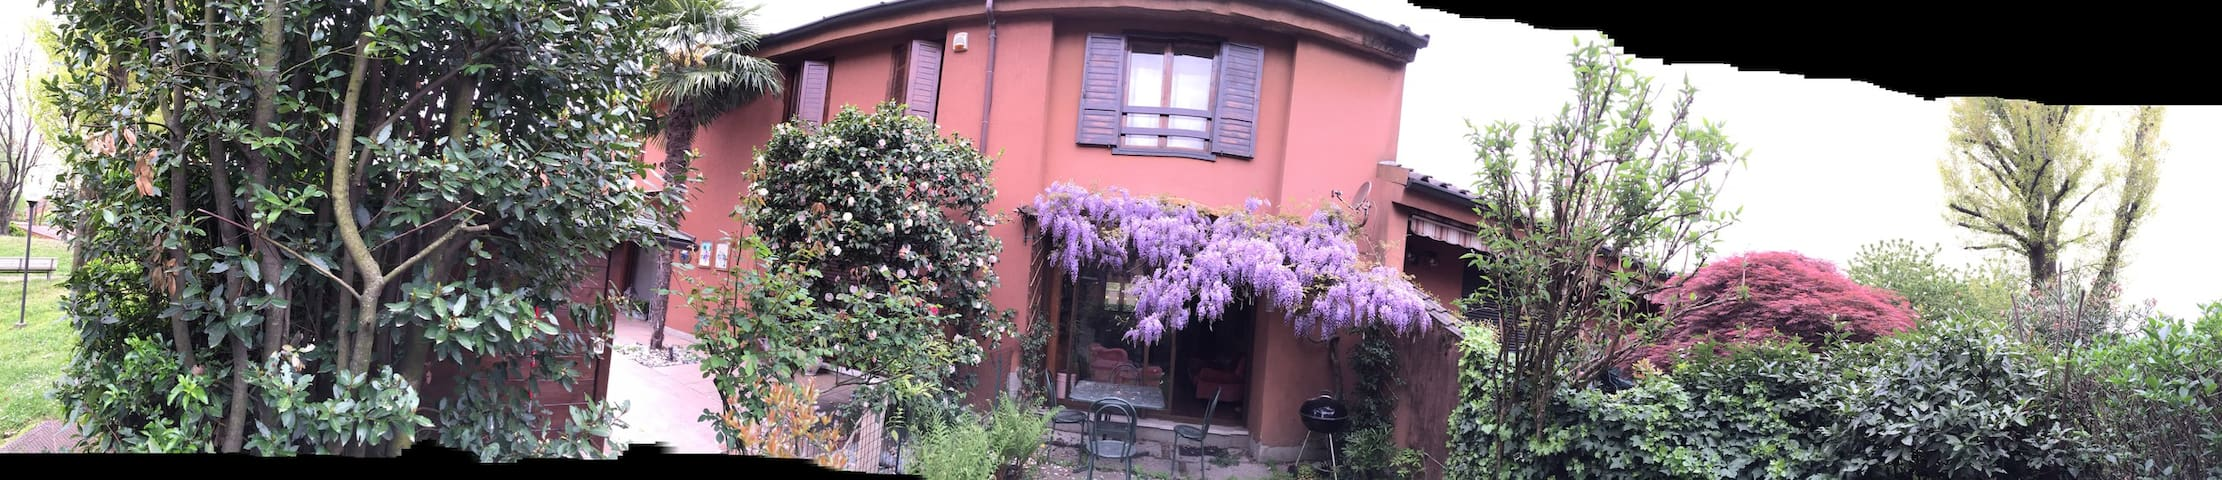 Glycine Villa 30 min from Milan - Arlate - Dom